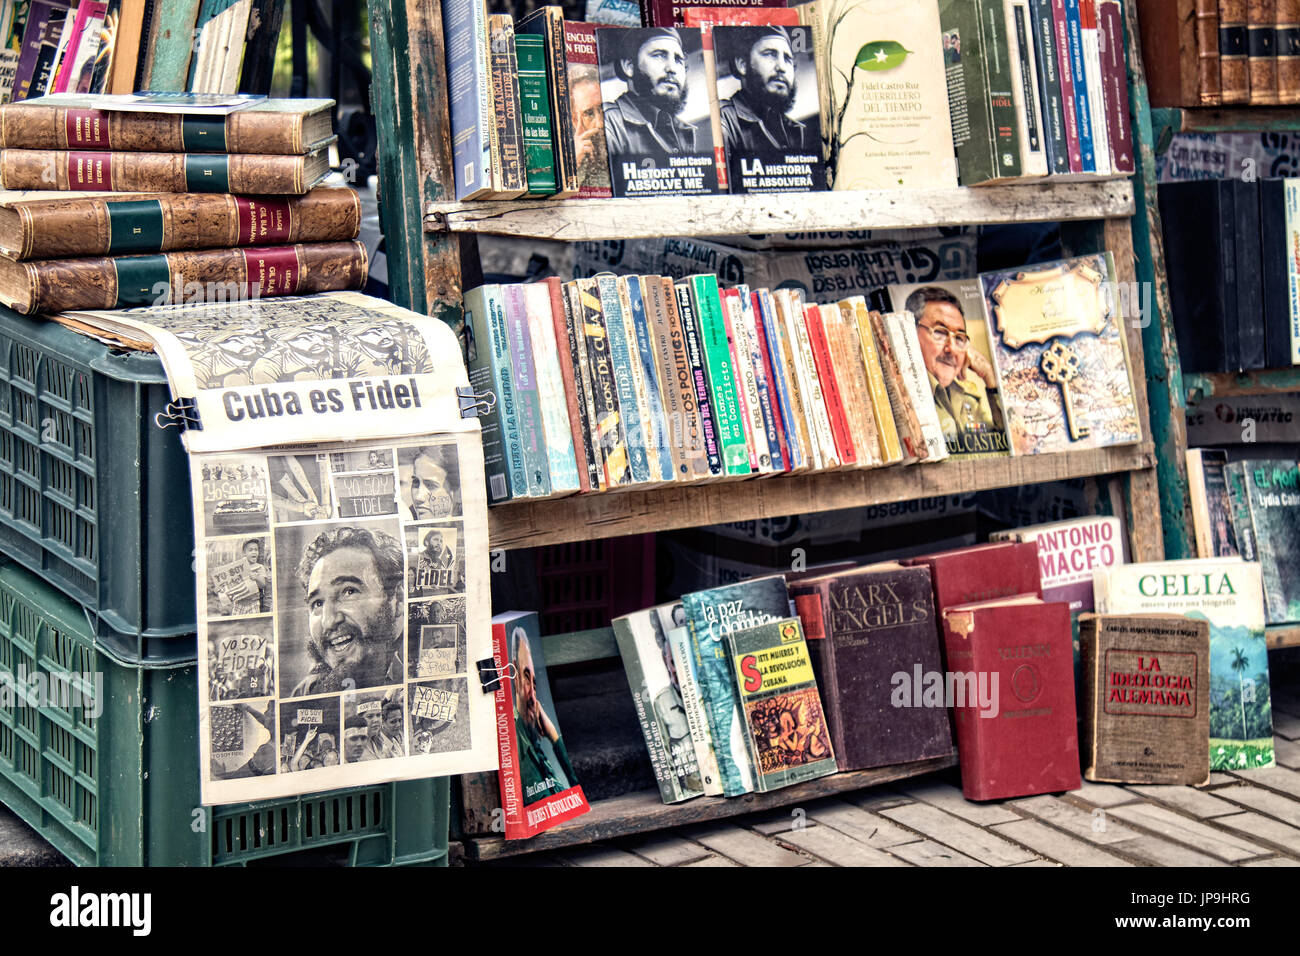 Books and newspapers about and written by Fidel Castro in Havana, Cuba. Stock Photo